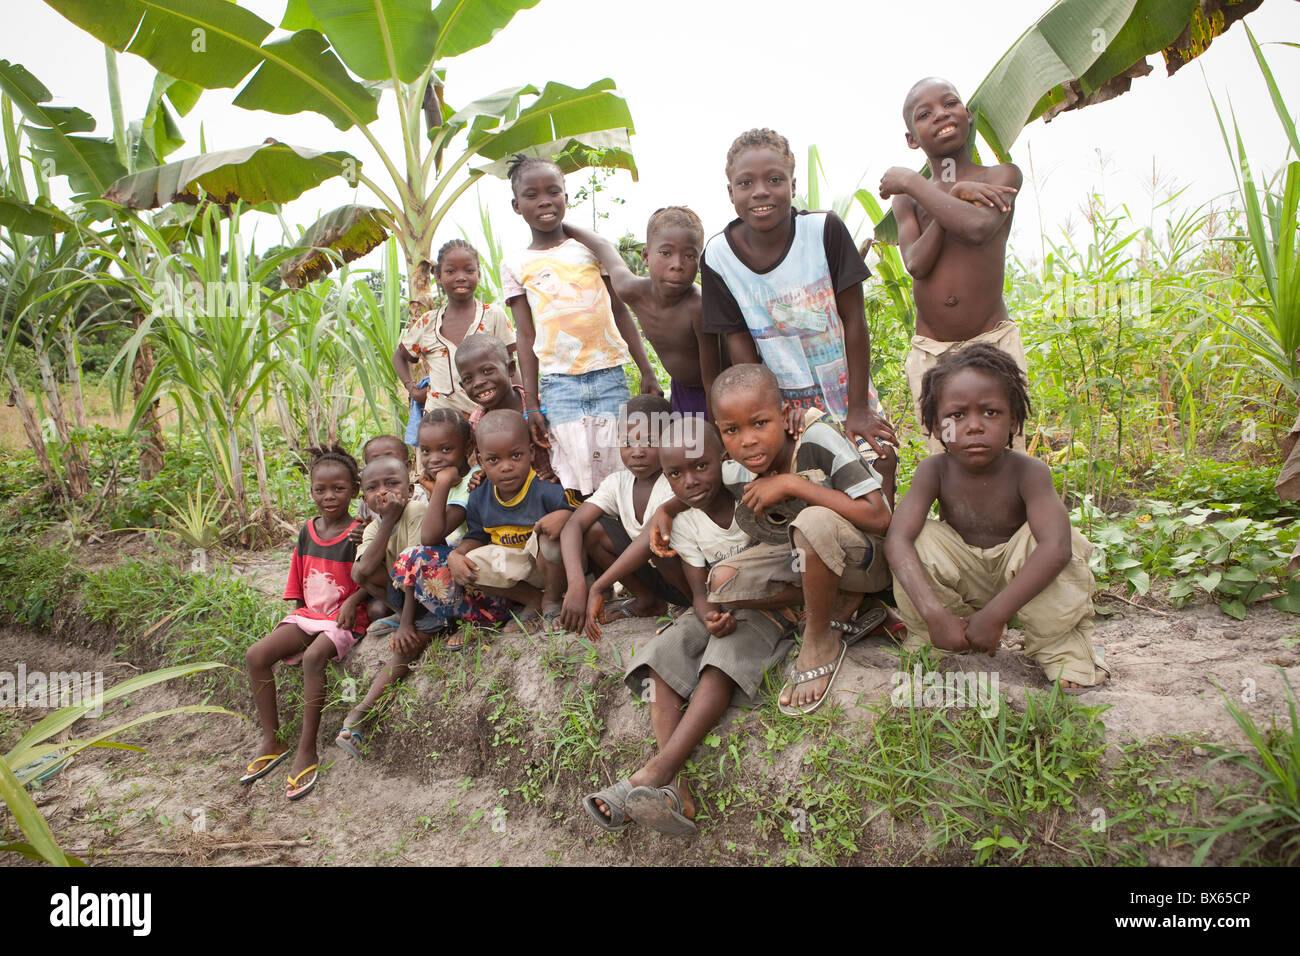 A group of children poses in Kakata, Liberia, West Africa. - Stock Image